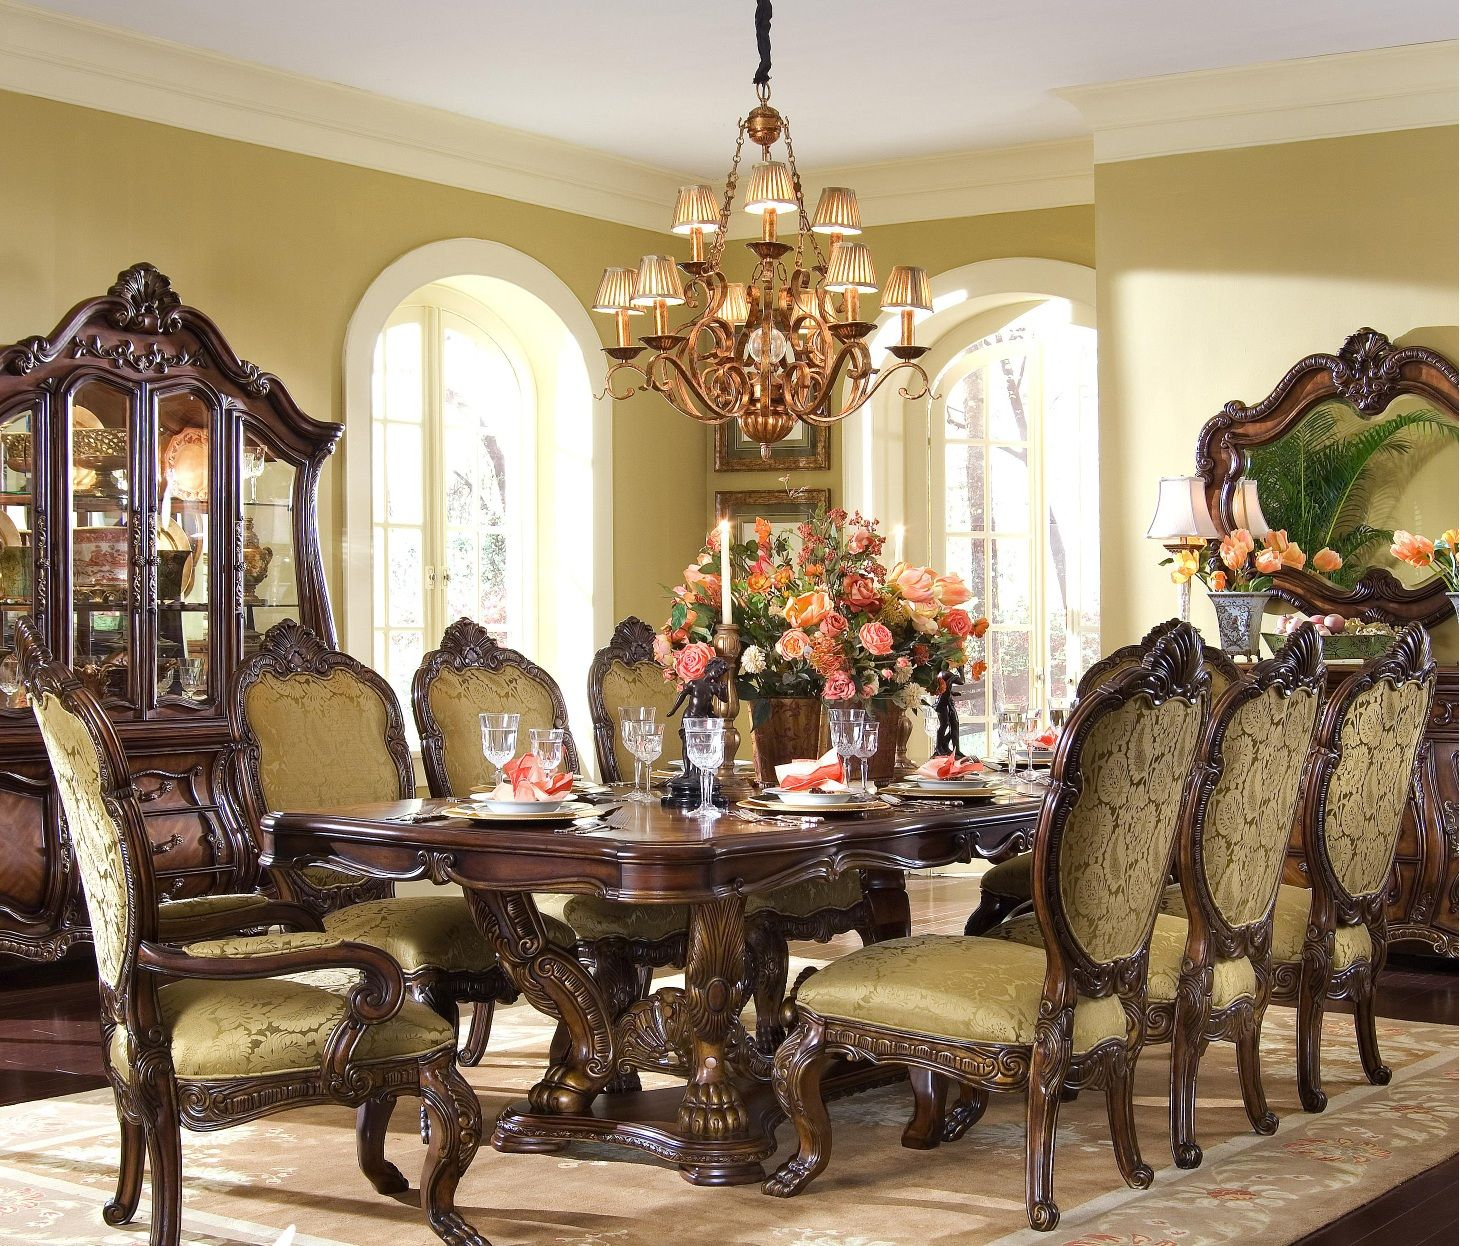 Victorian Dining Room Table: Victorian Dining Room